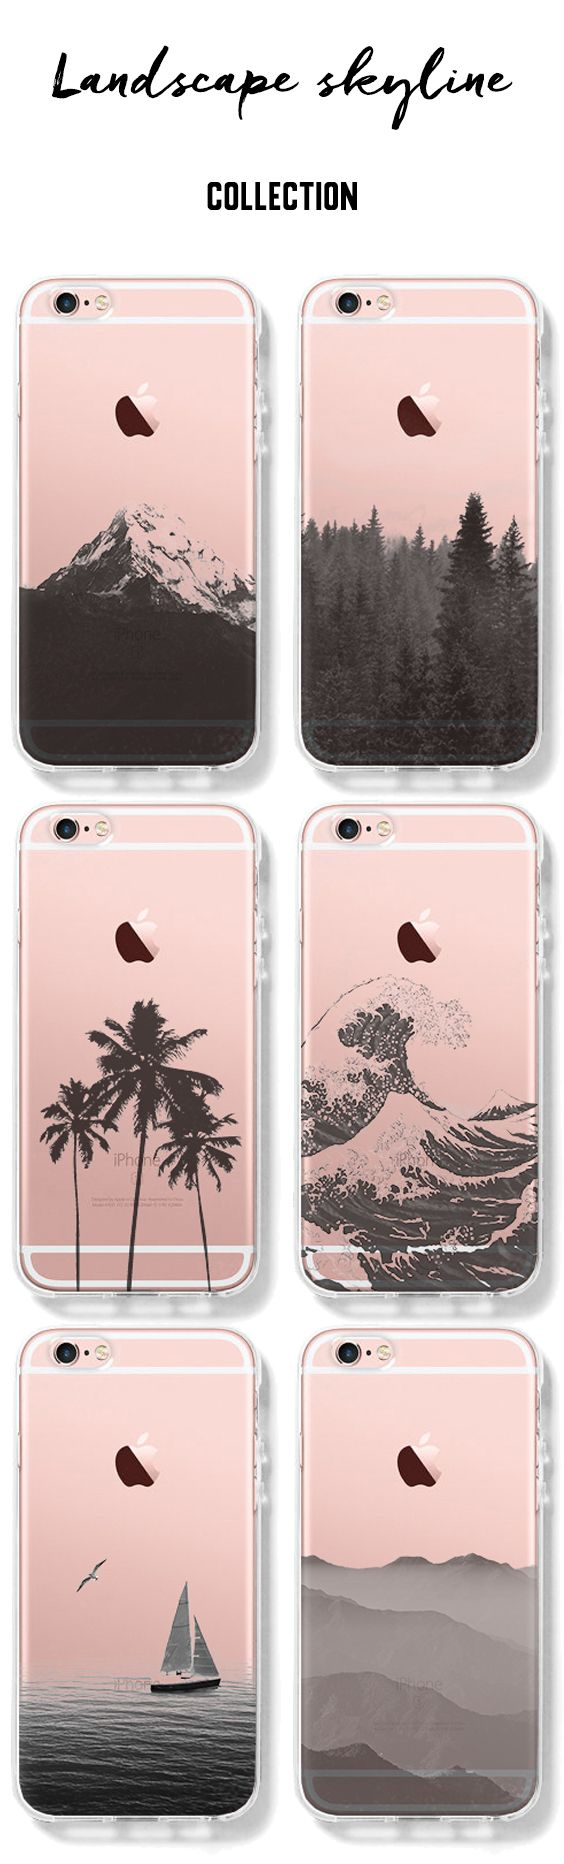 Stylish Landscape iPhone Clear Case for 6S/6/Plus/SE/5S/5/5C